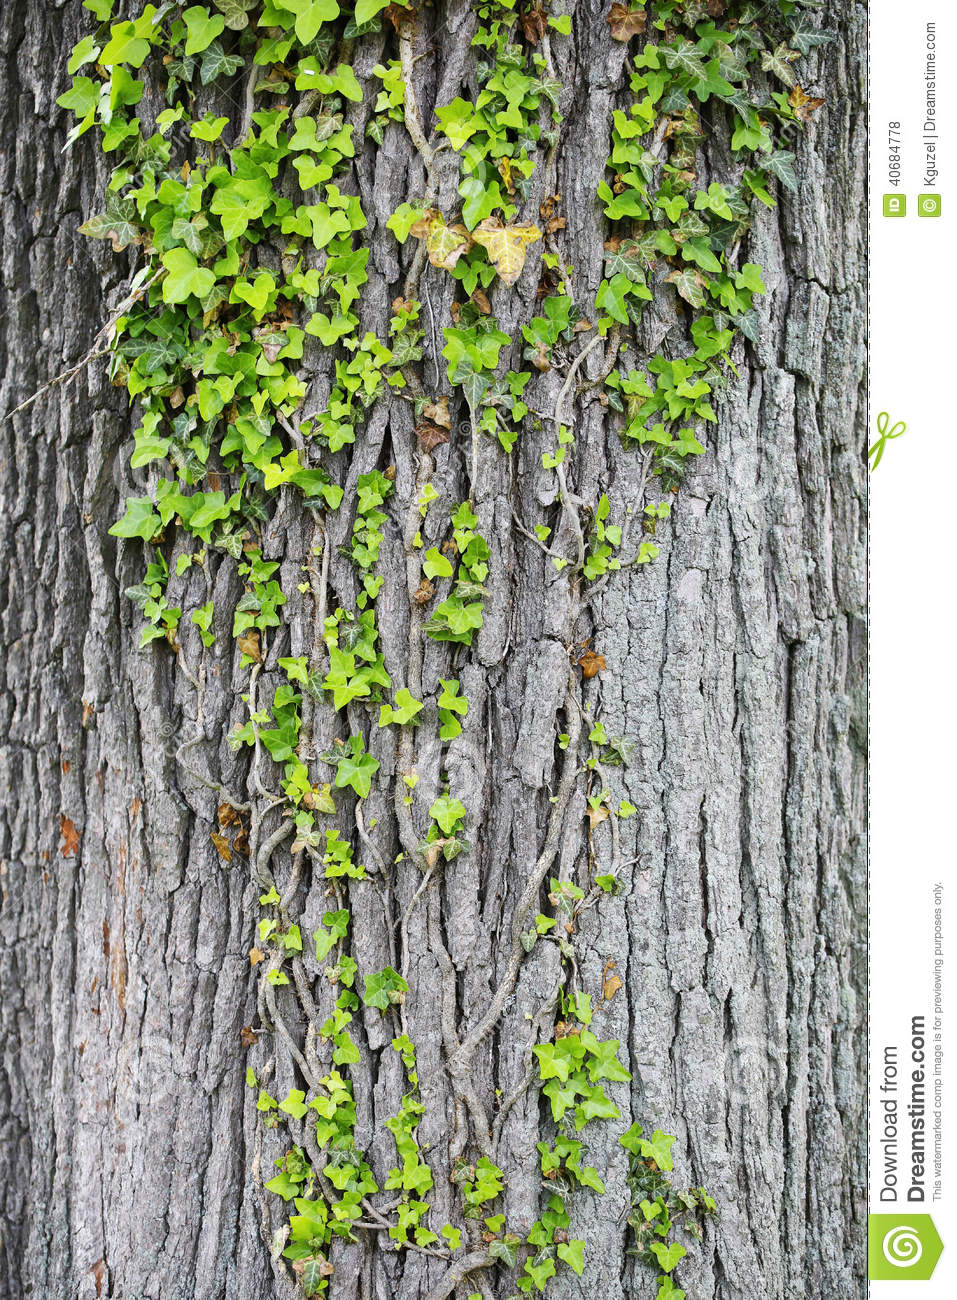 Does it harm trees for ivy to grow?